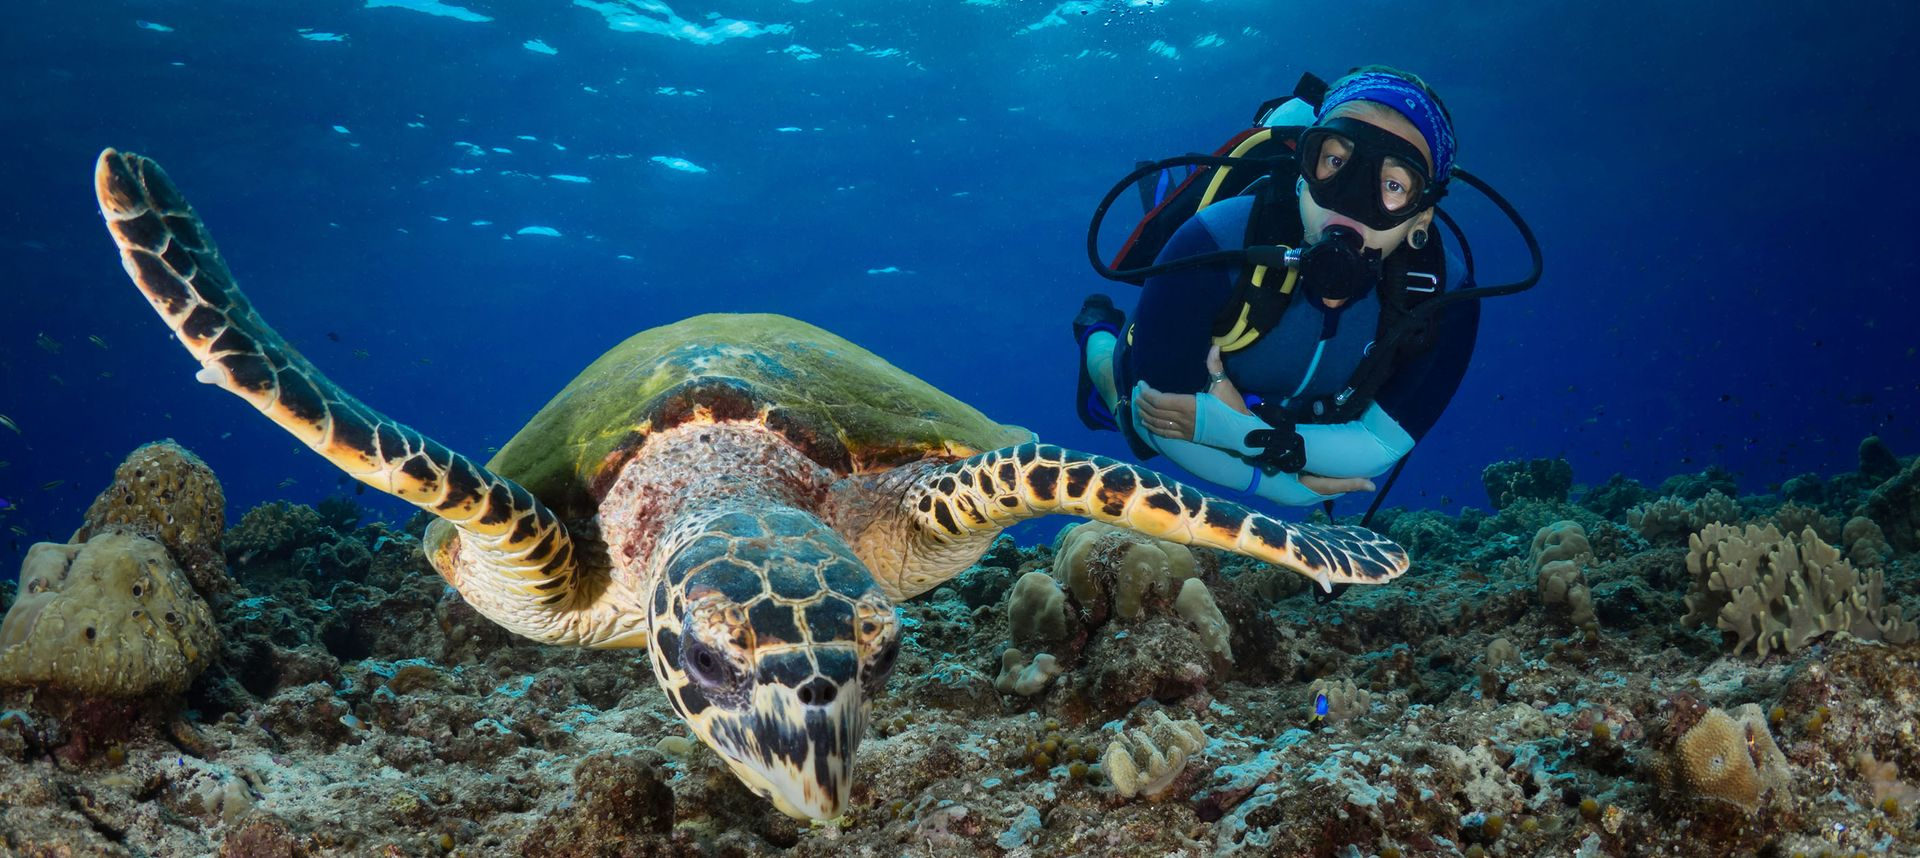 Diving and snorkelling adventures can be so rewarding (Shutterstock)